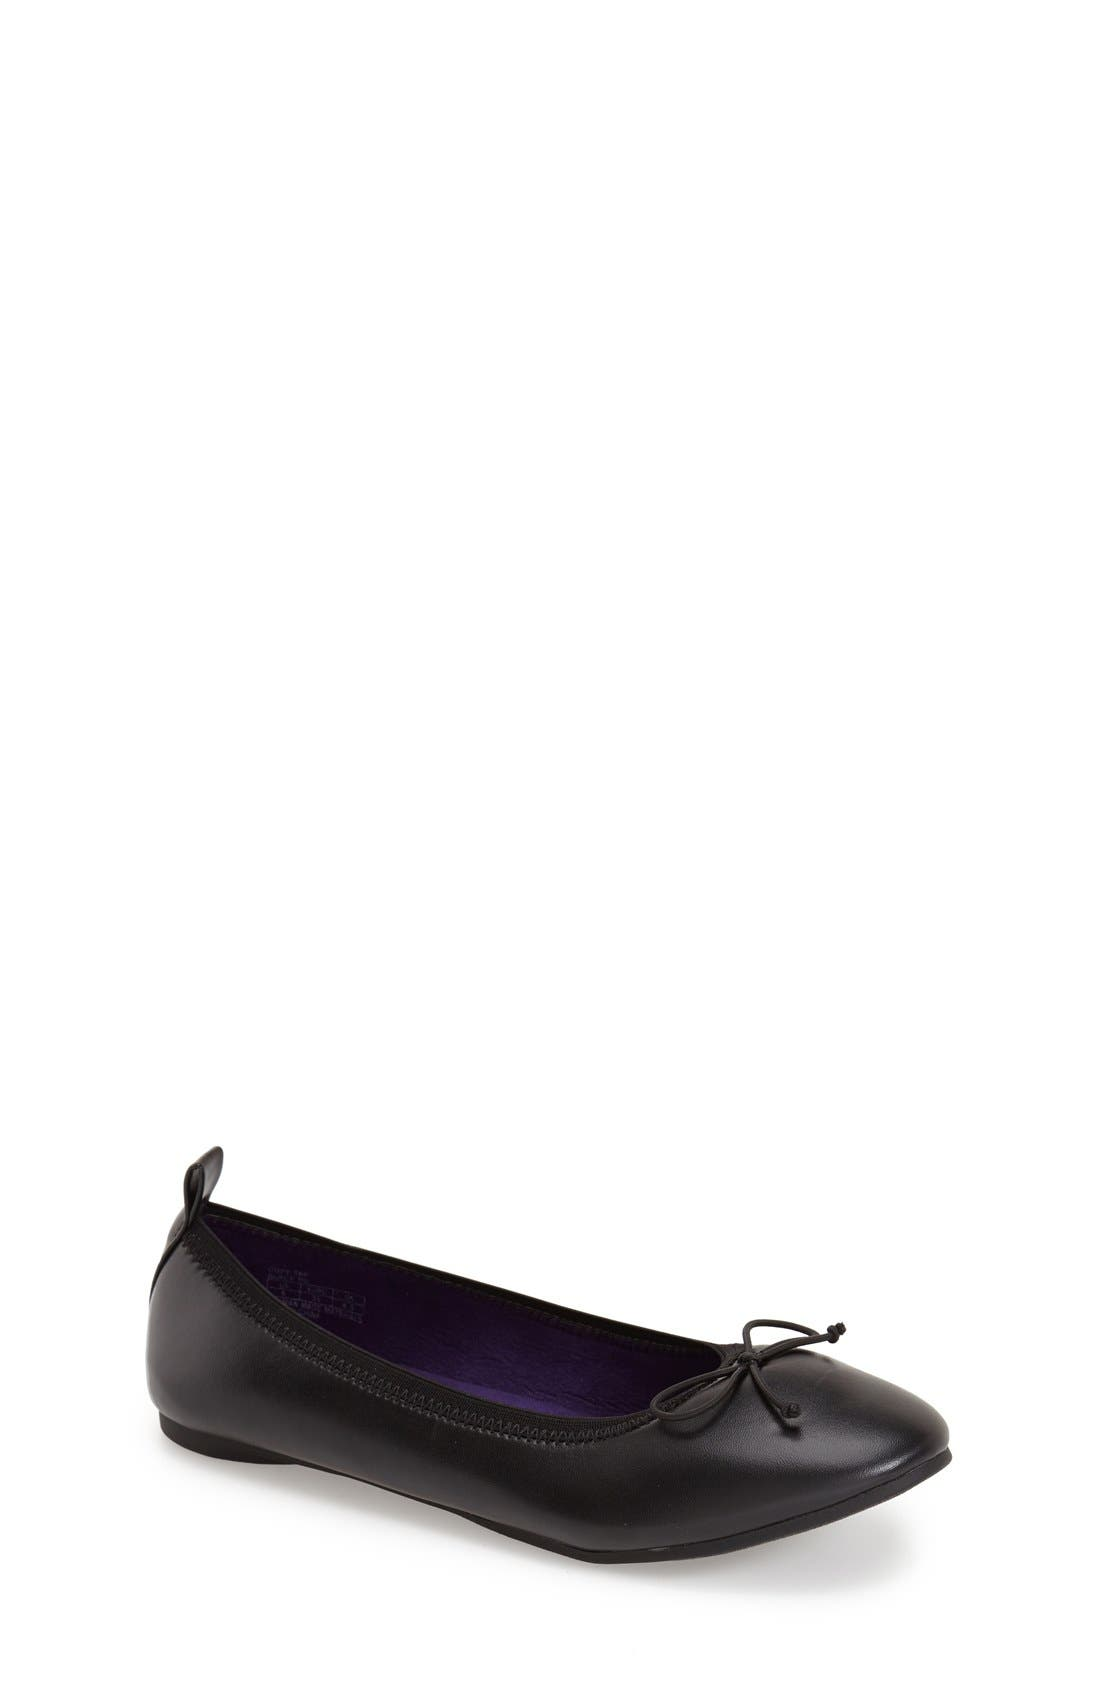 REACTION KENNETH COLE Copy Tap Metallic Ballet Flat